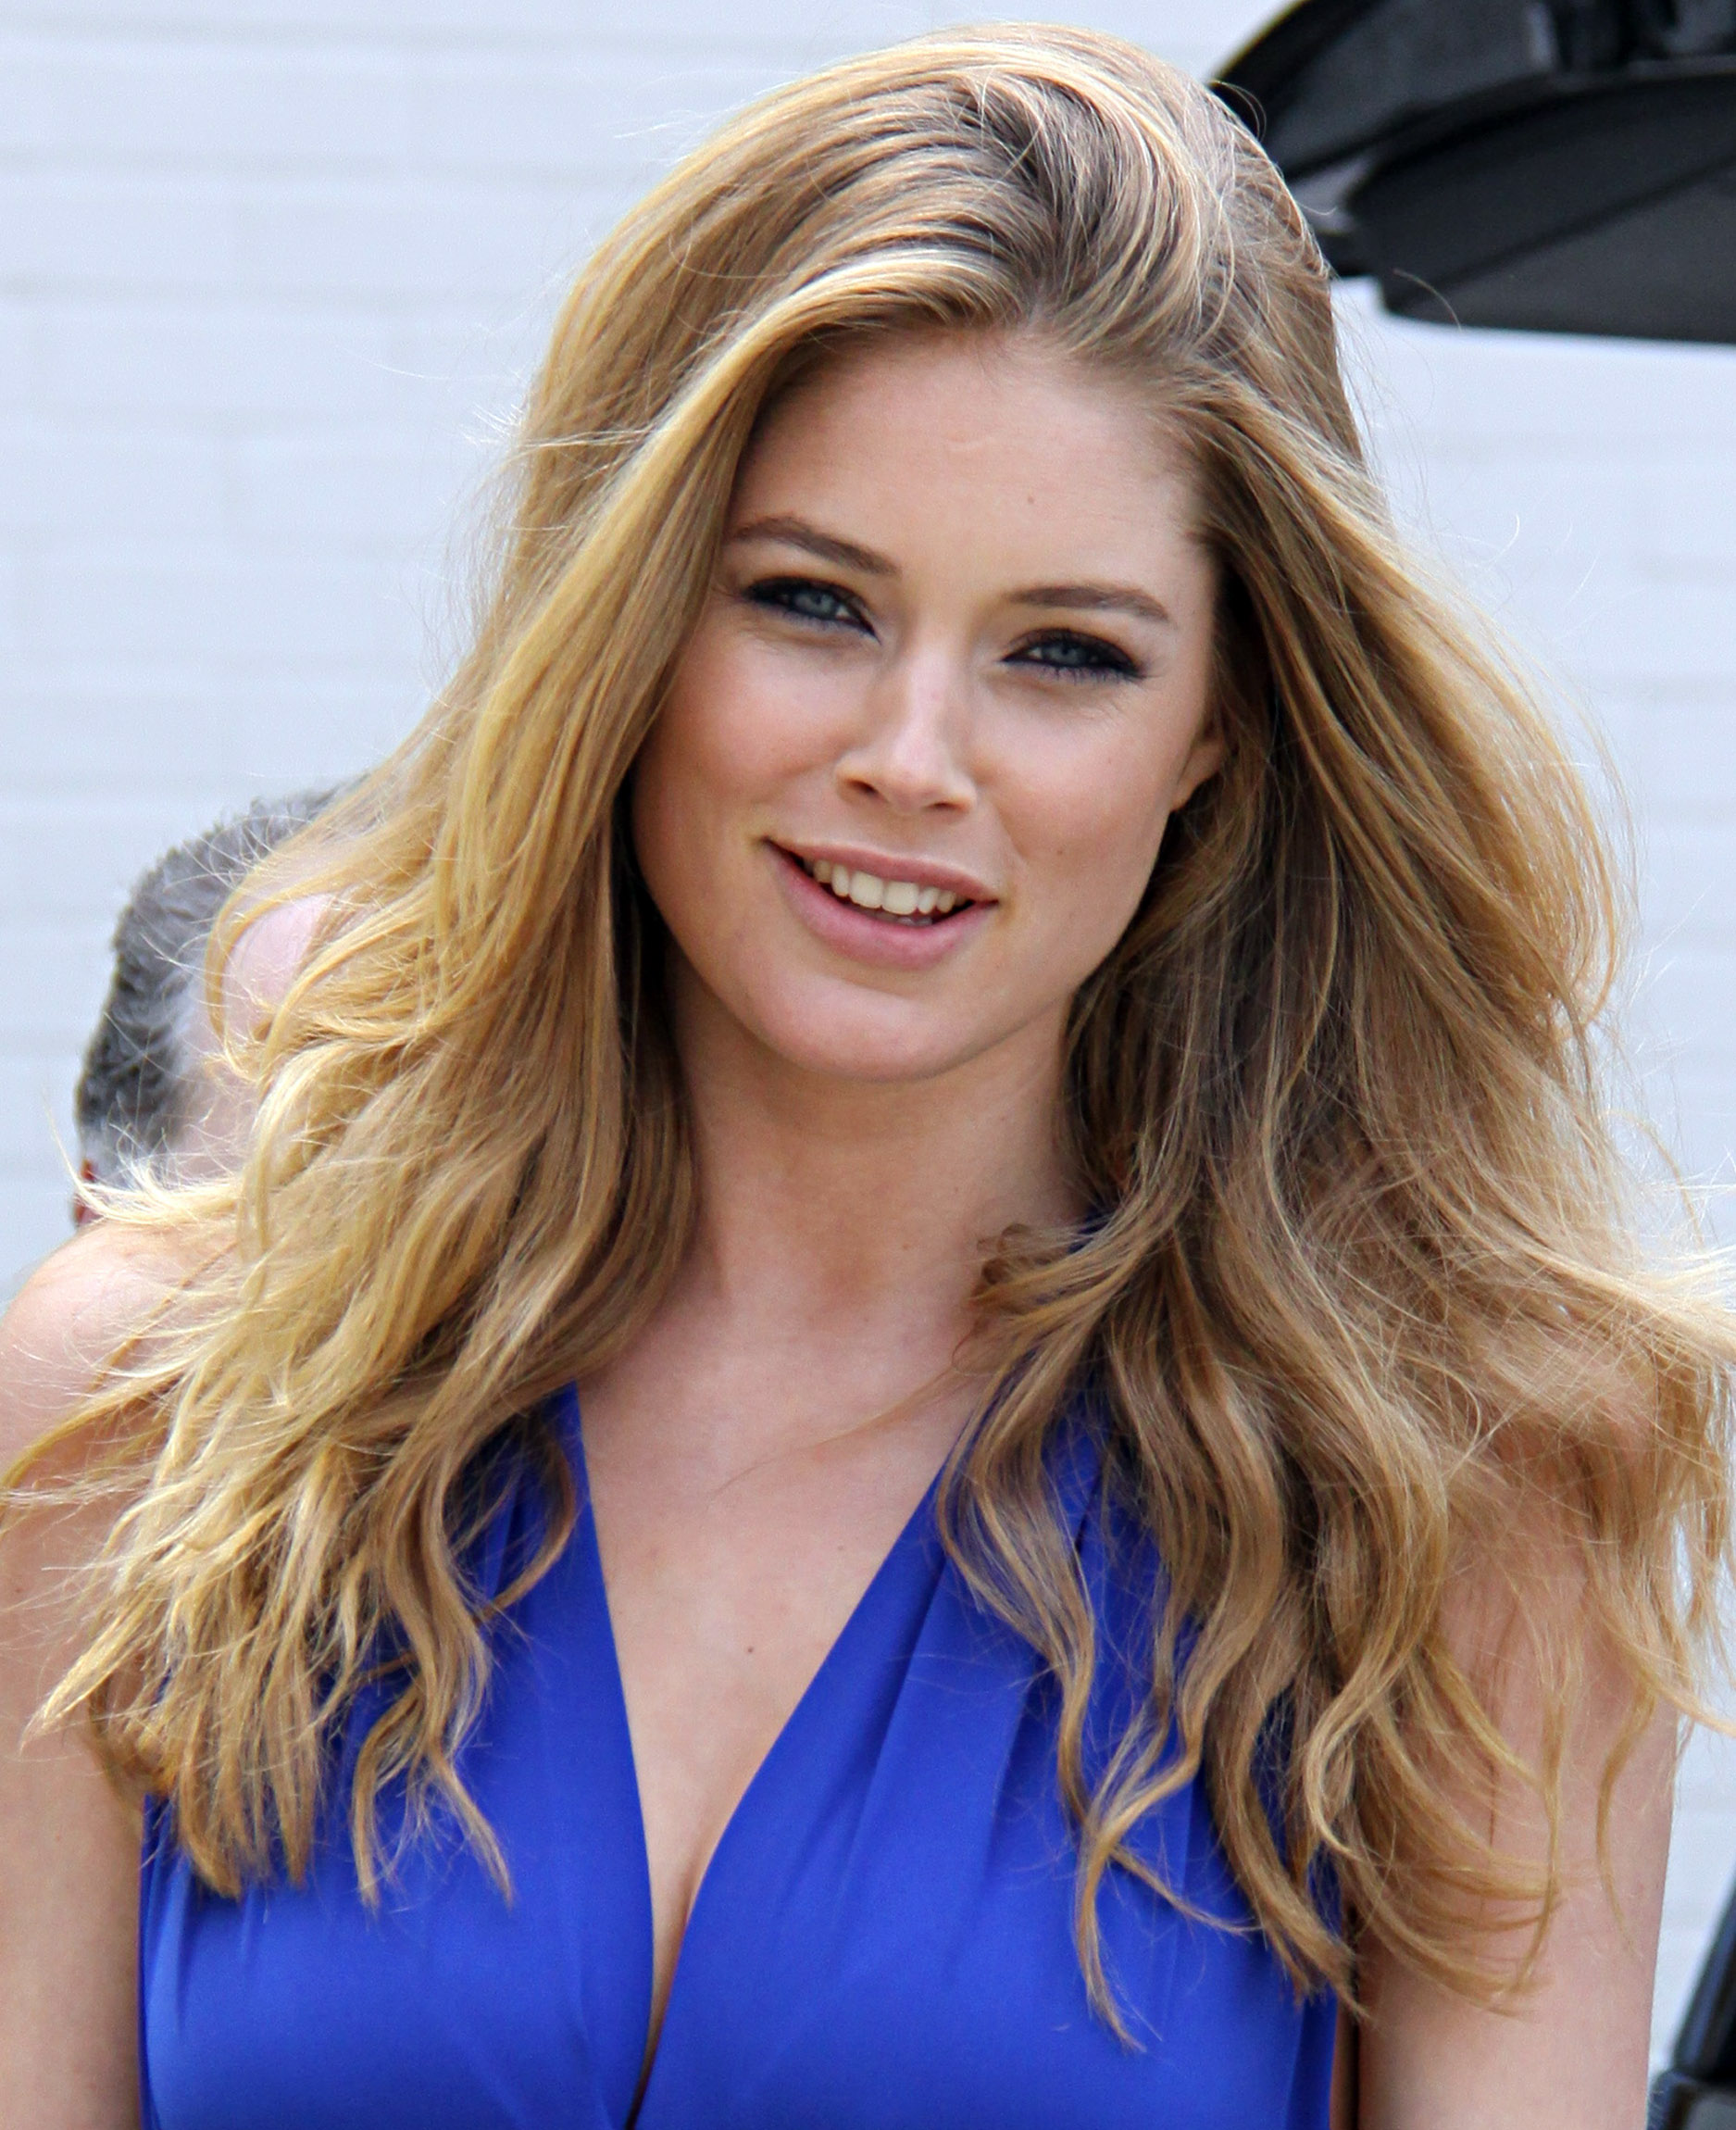 Doutzen Kroes: All you wish to know about this Dutch model